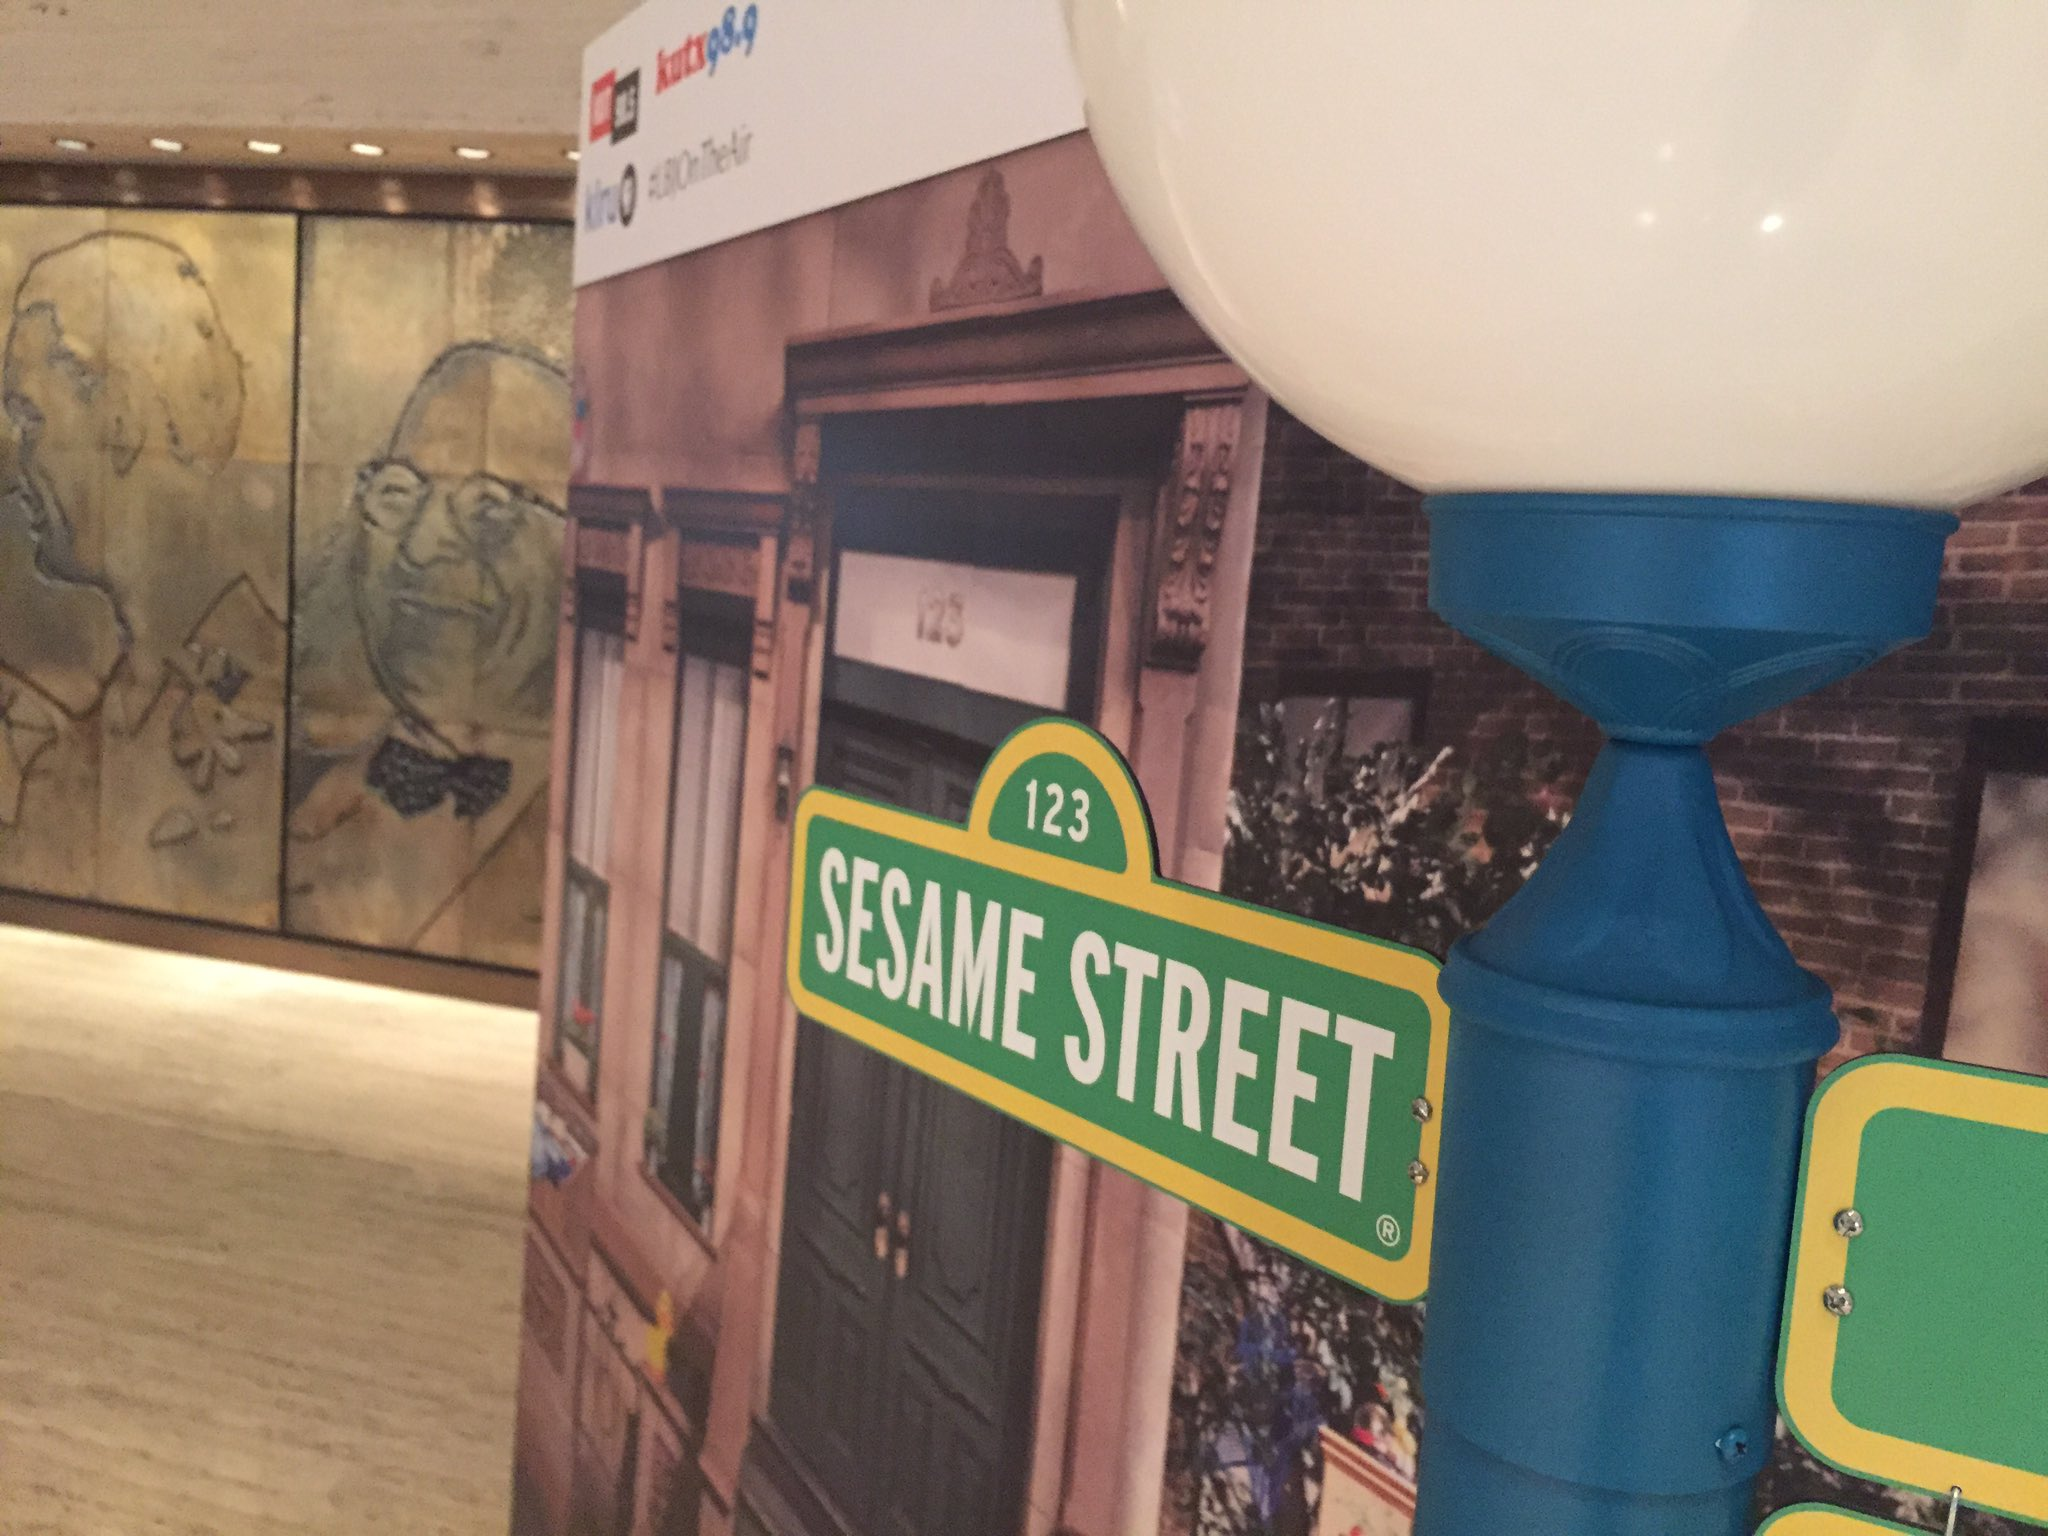 Sesame Street exhibit at LBJ Library highlights 50 years of